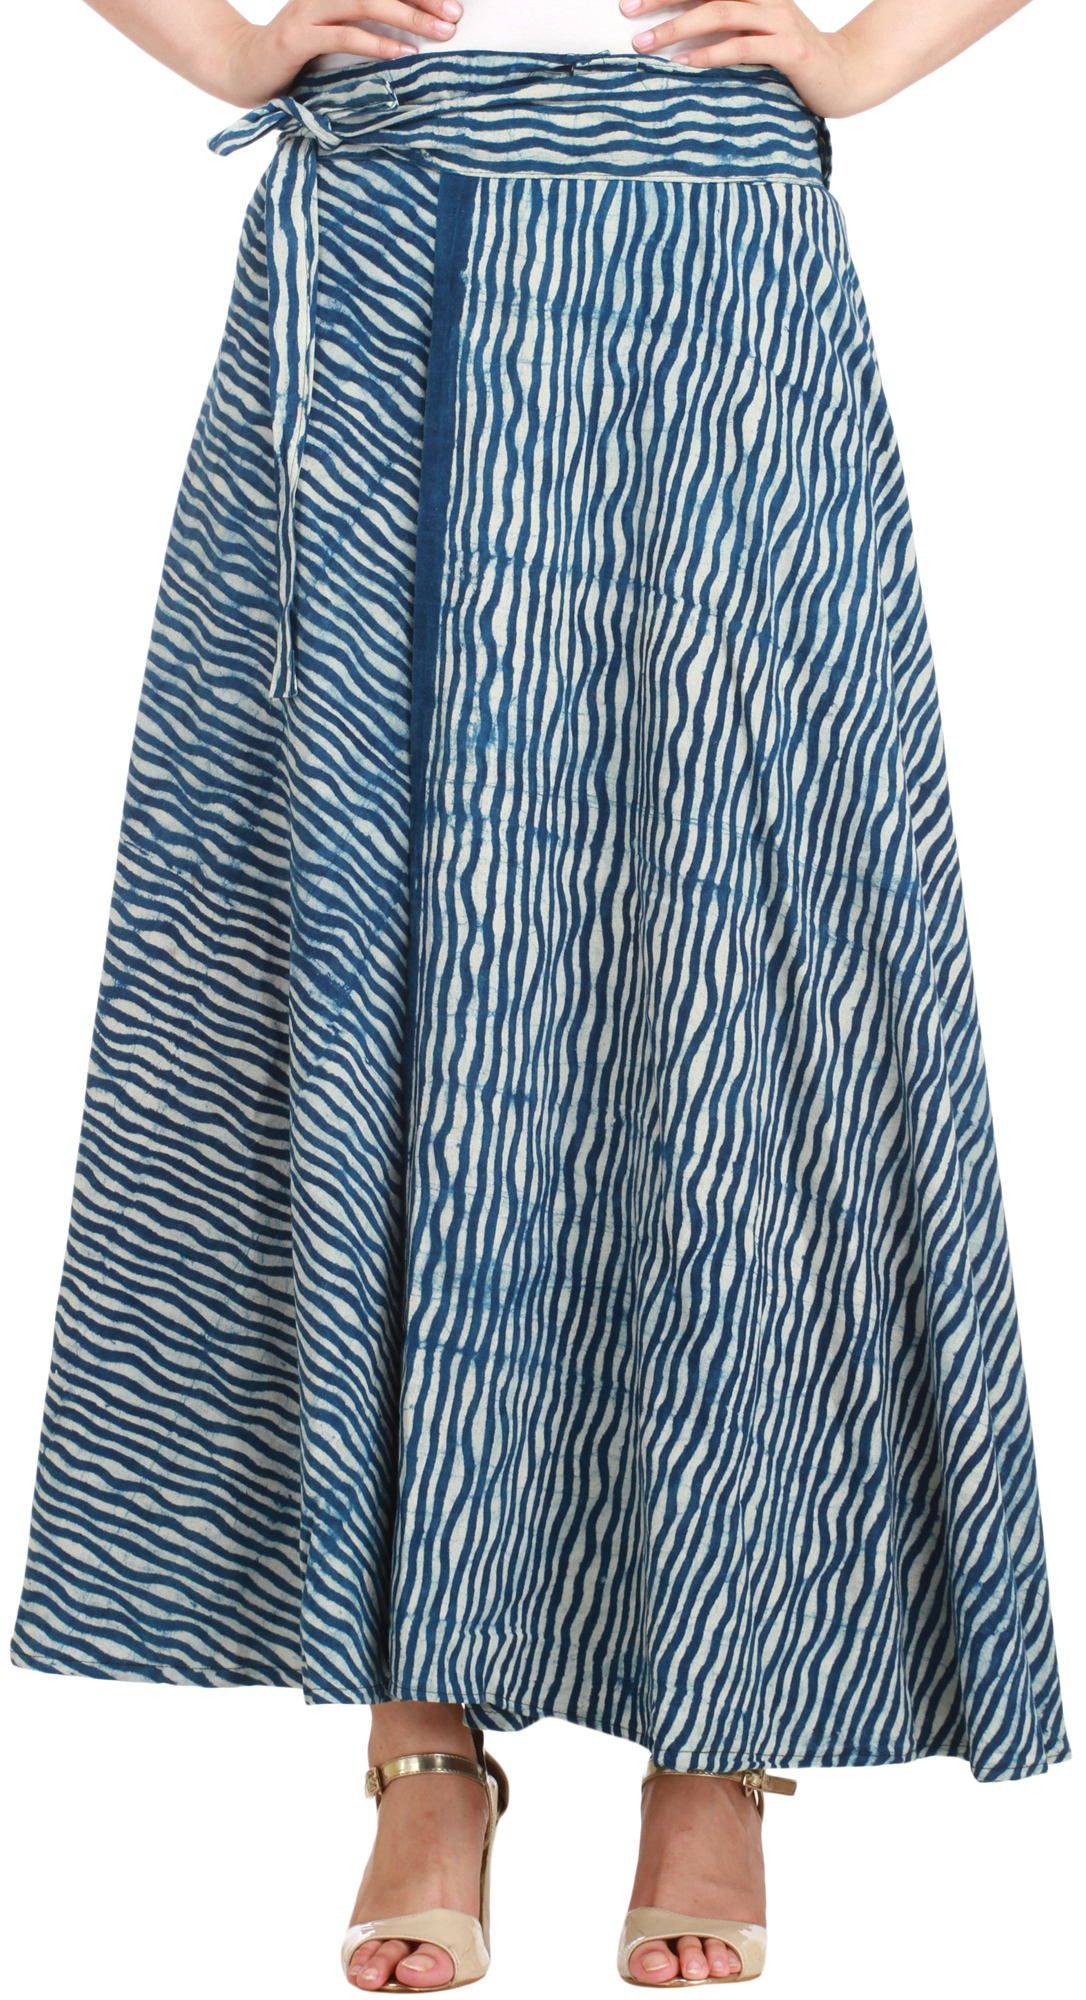 ensign blue wrap around leheria skirt from pilkhuwa with